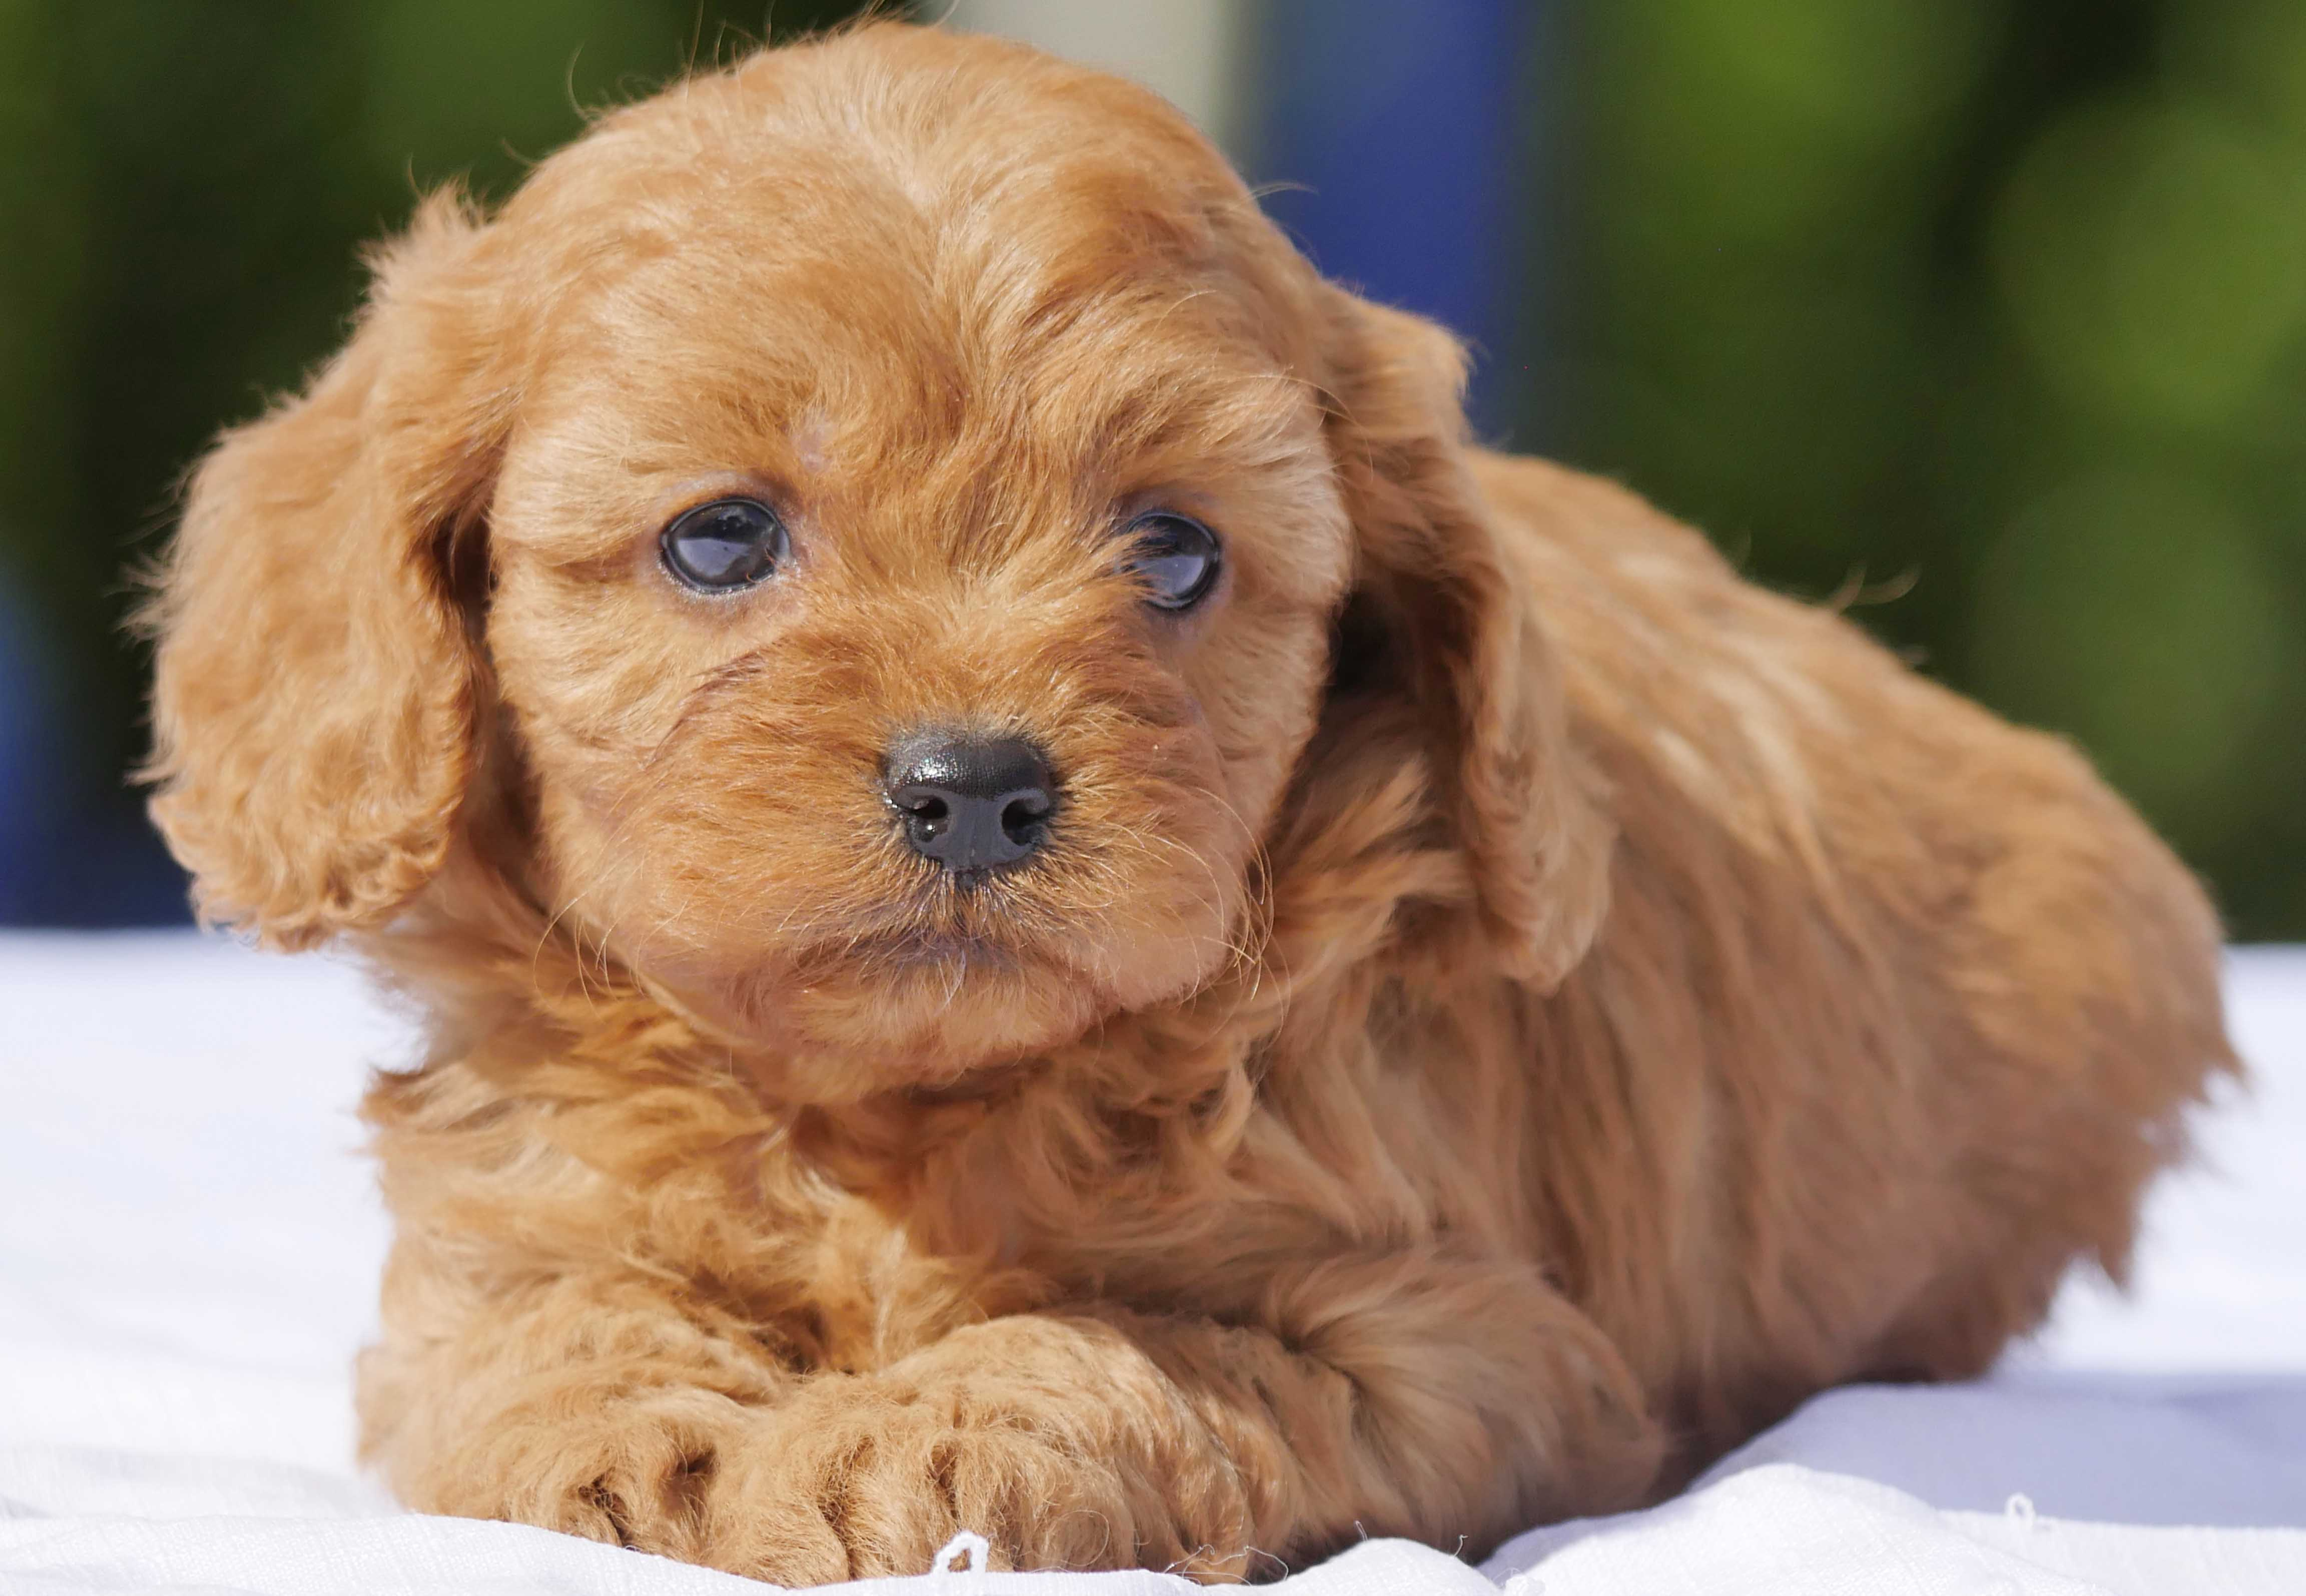 Cavoodle Puppies For Sale | Chevromist Kennels Puppies ...